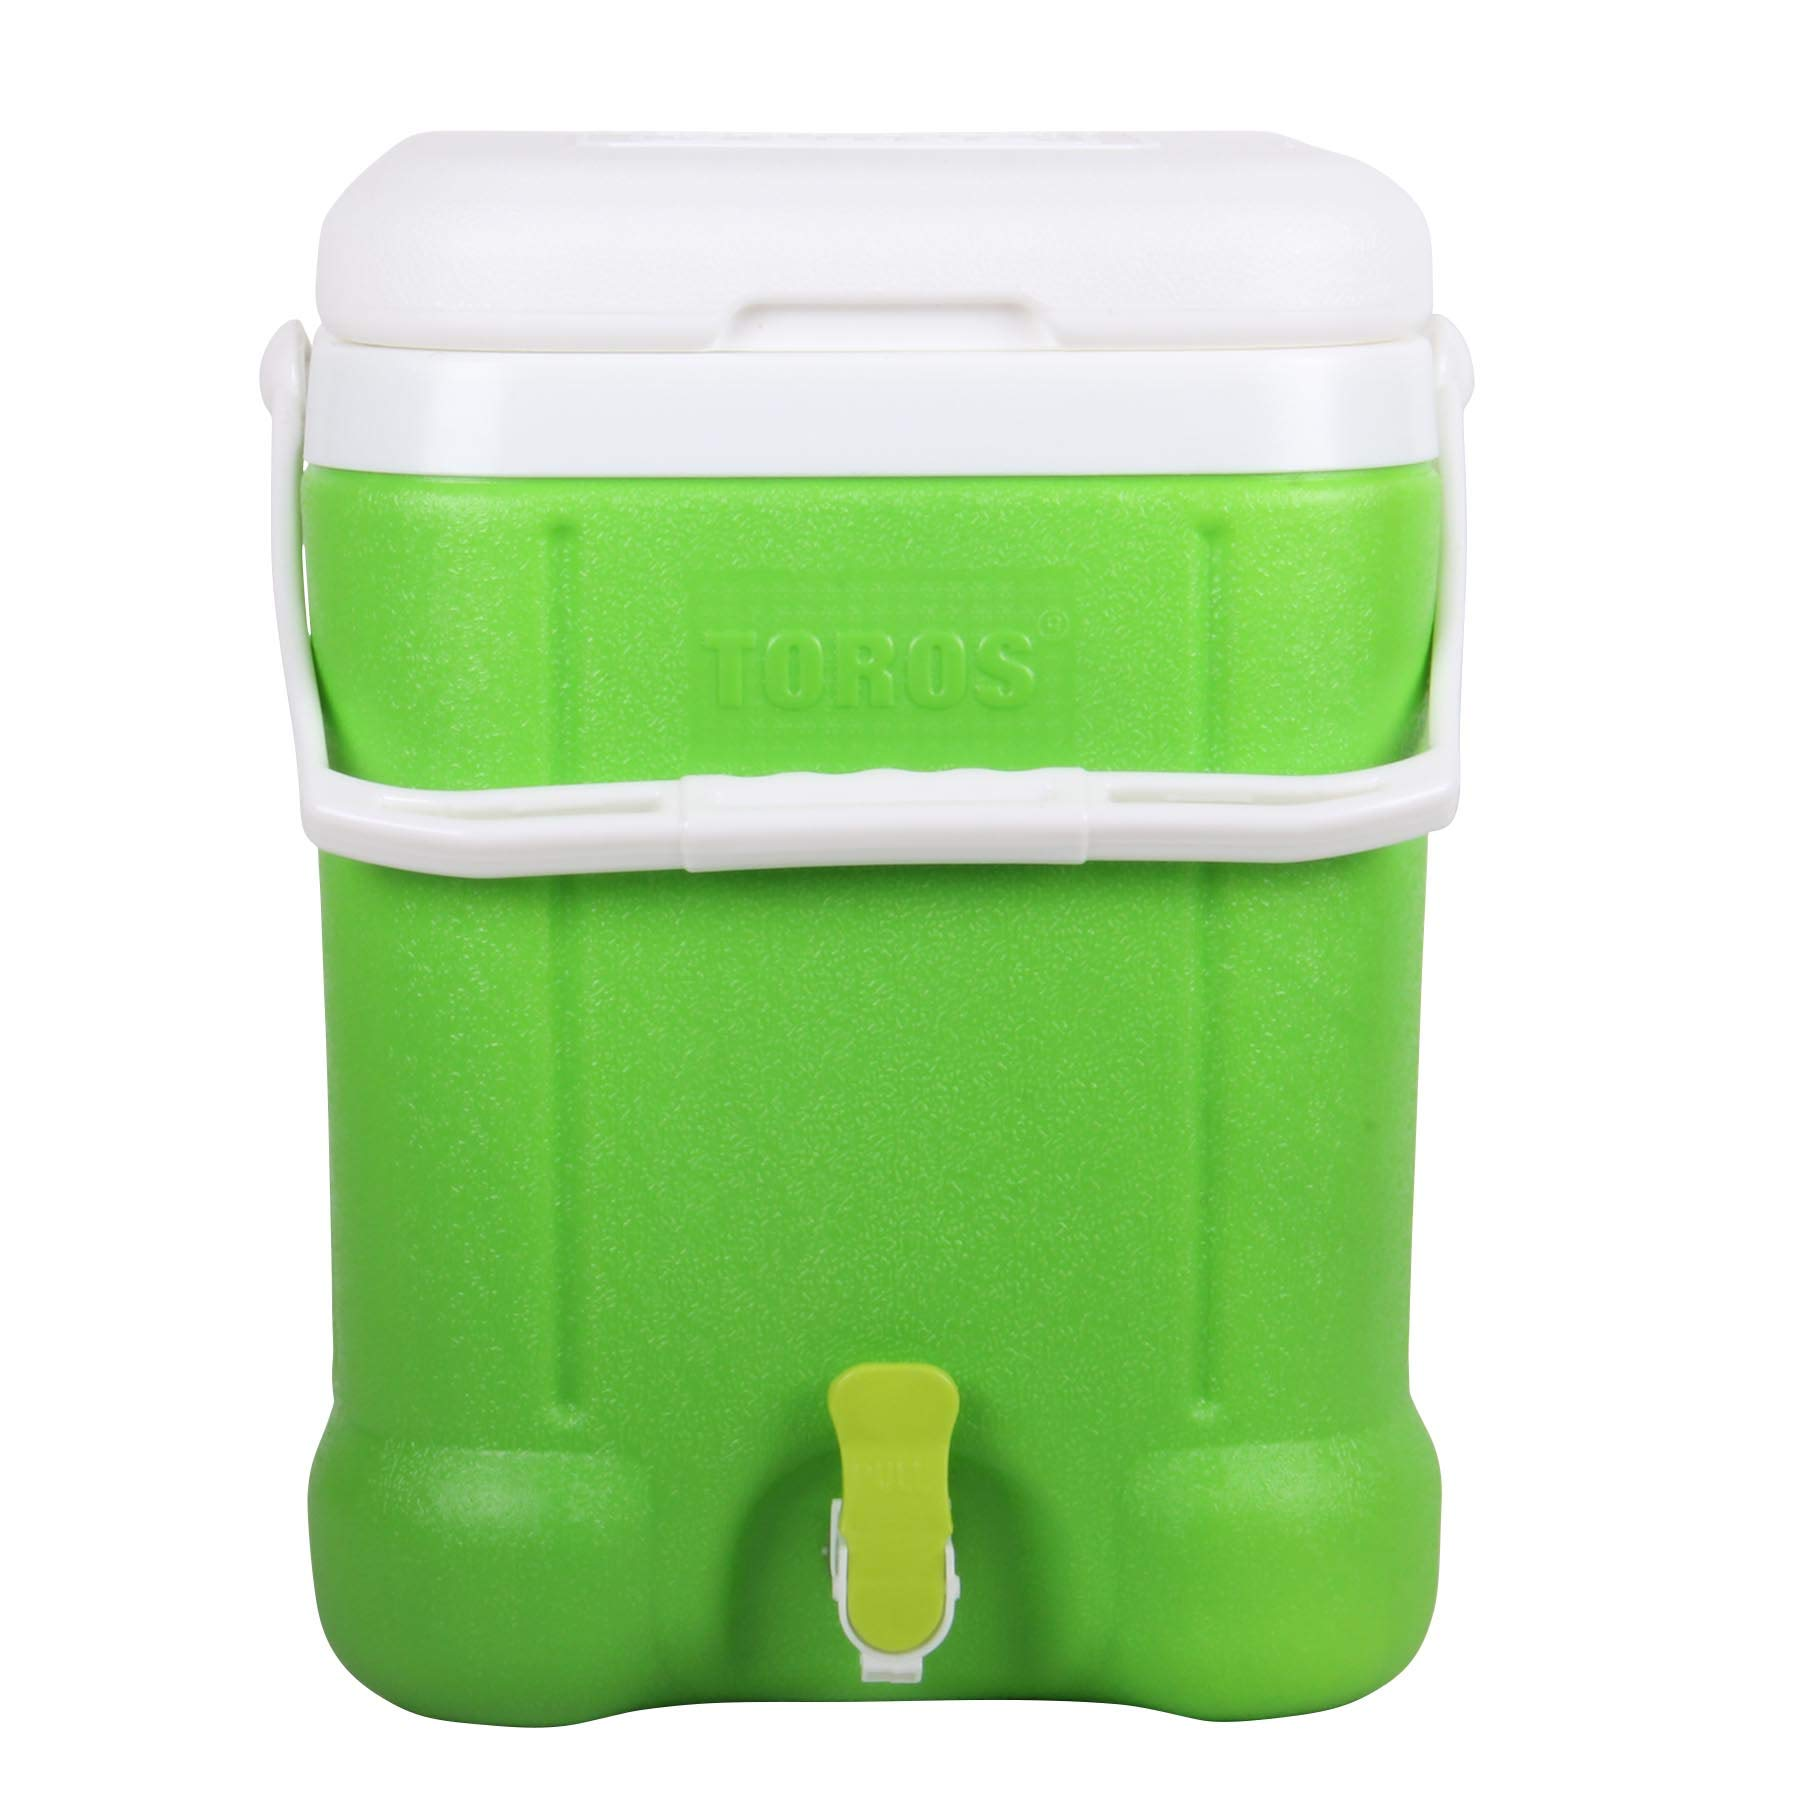 Toros Large Insulated Water Dispenser 20L Caravan Suitable for Camping Plastic Water Beverage Ice Cooler Tank Box Thermos Pool.